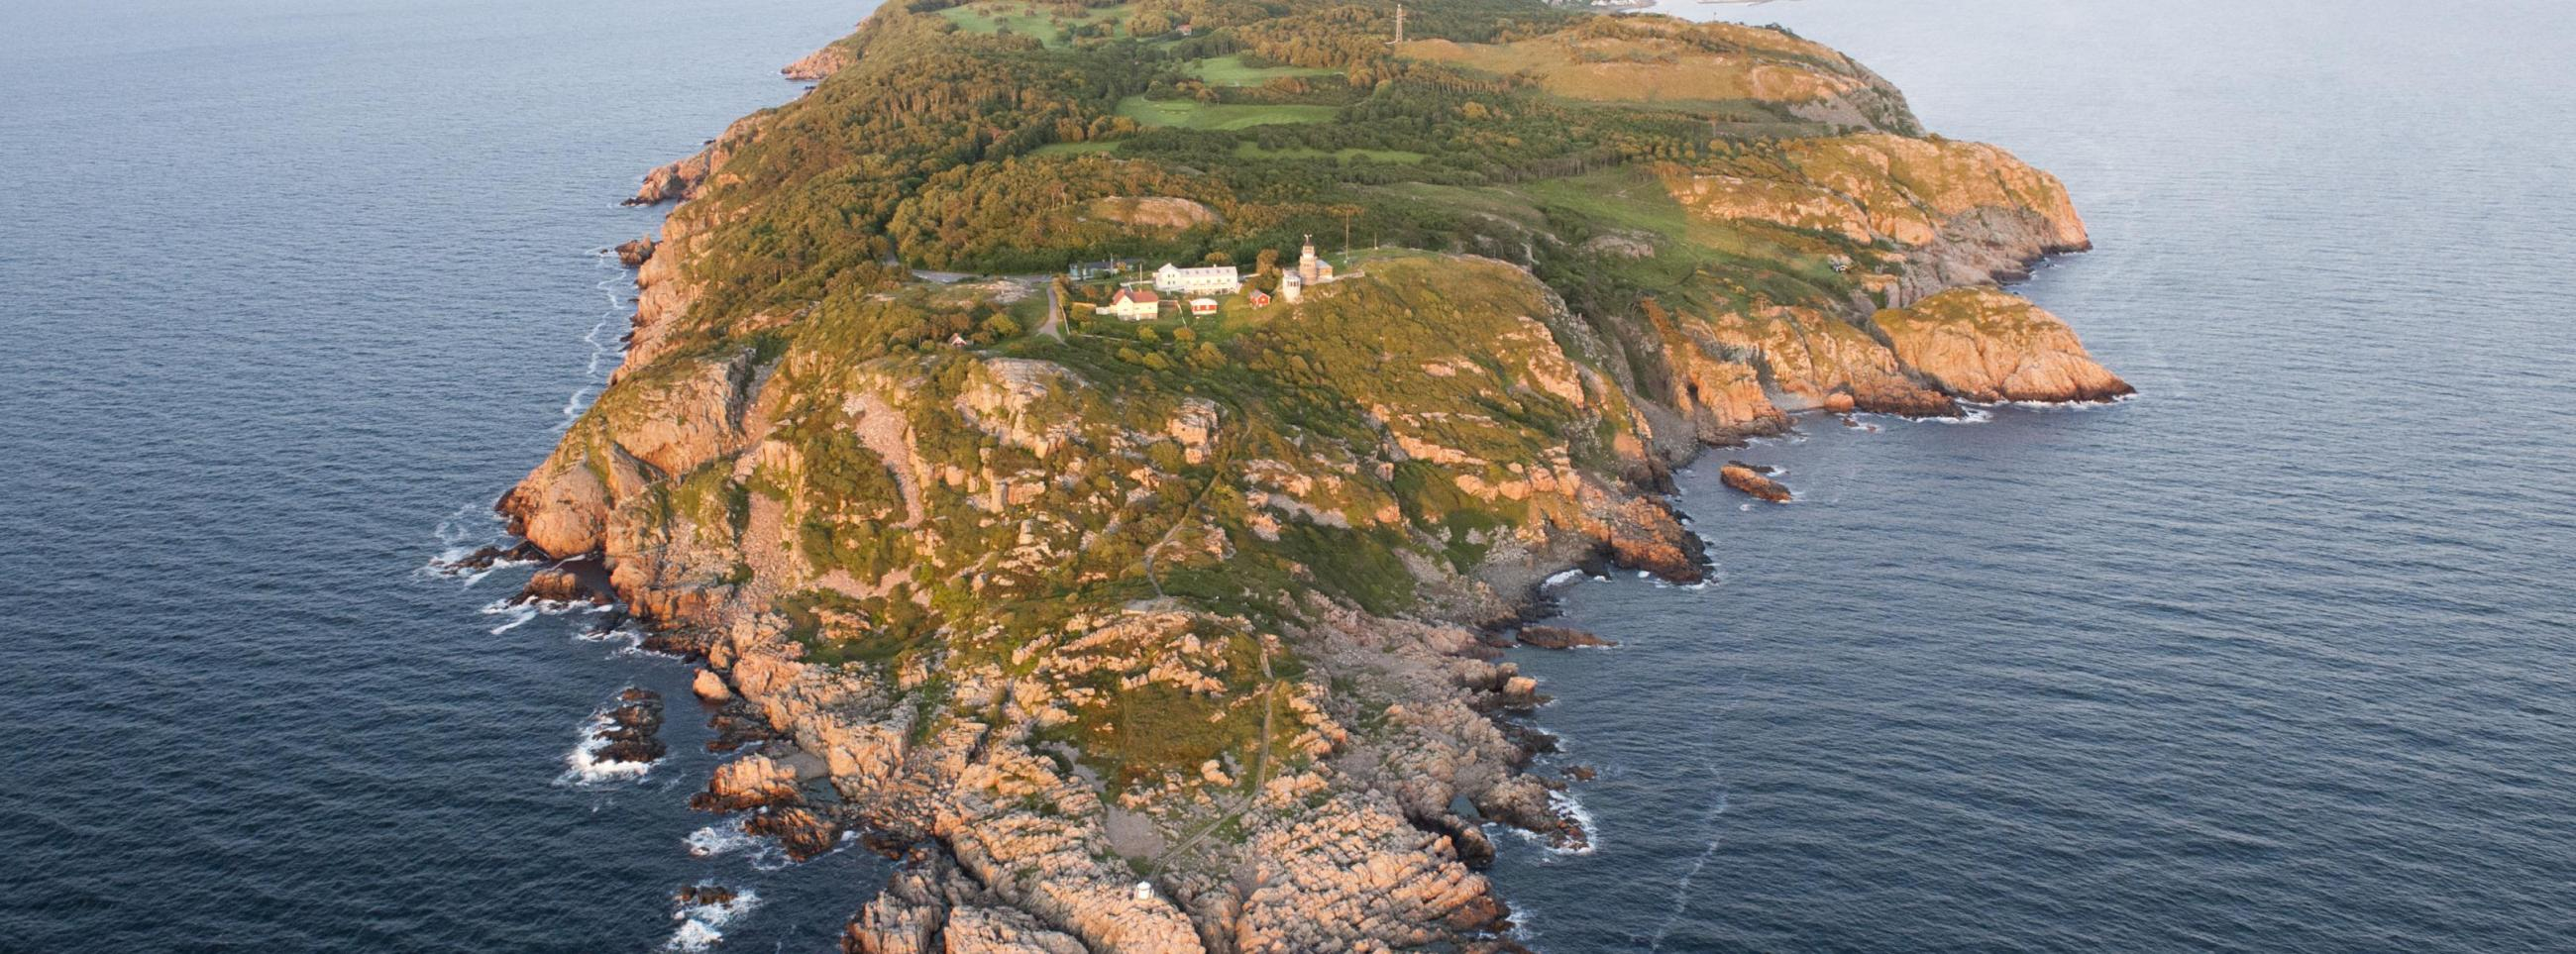 Kullaberg Nature Reserve